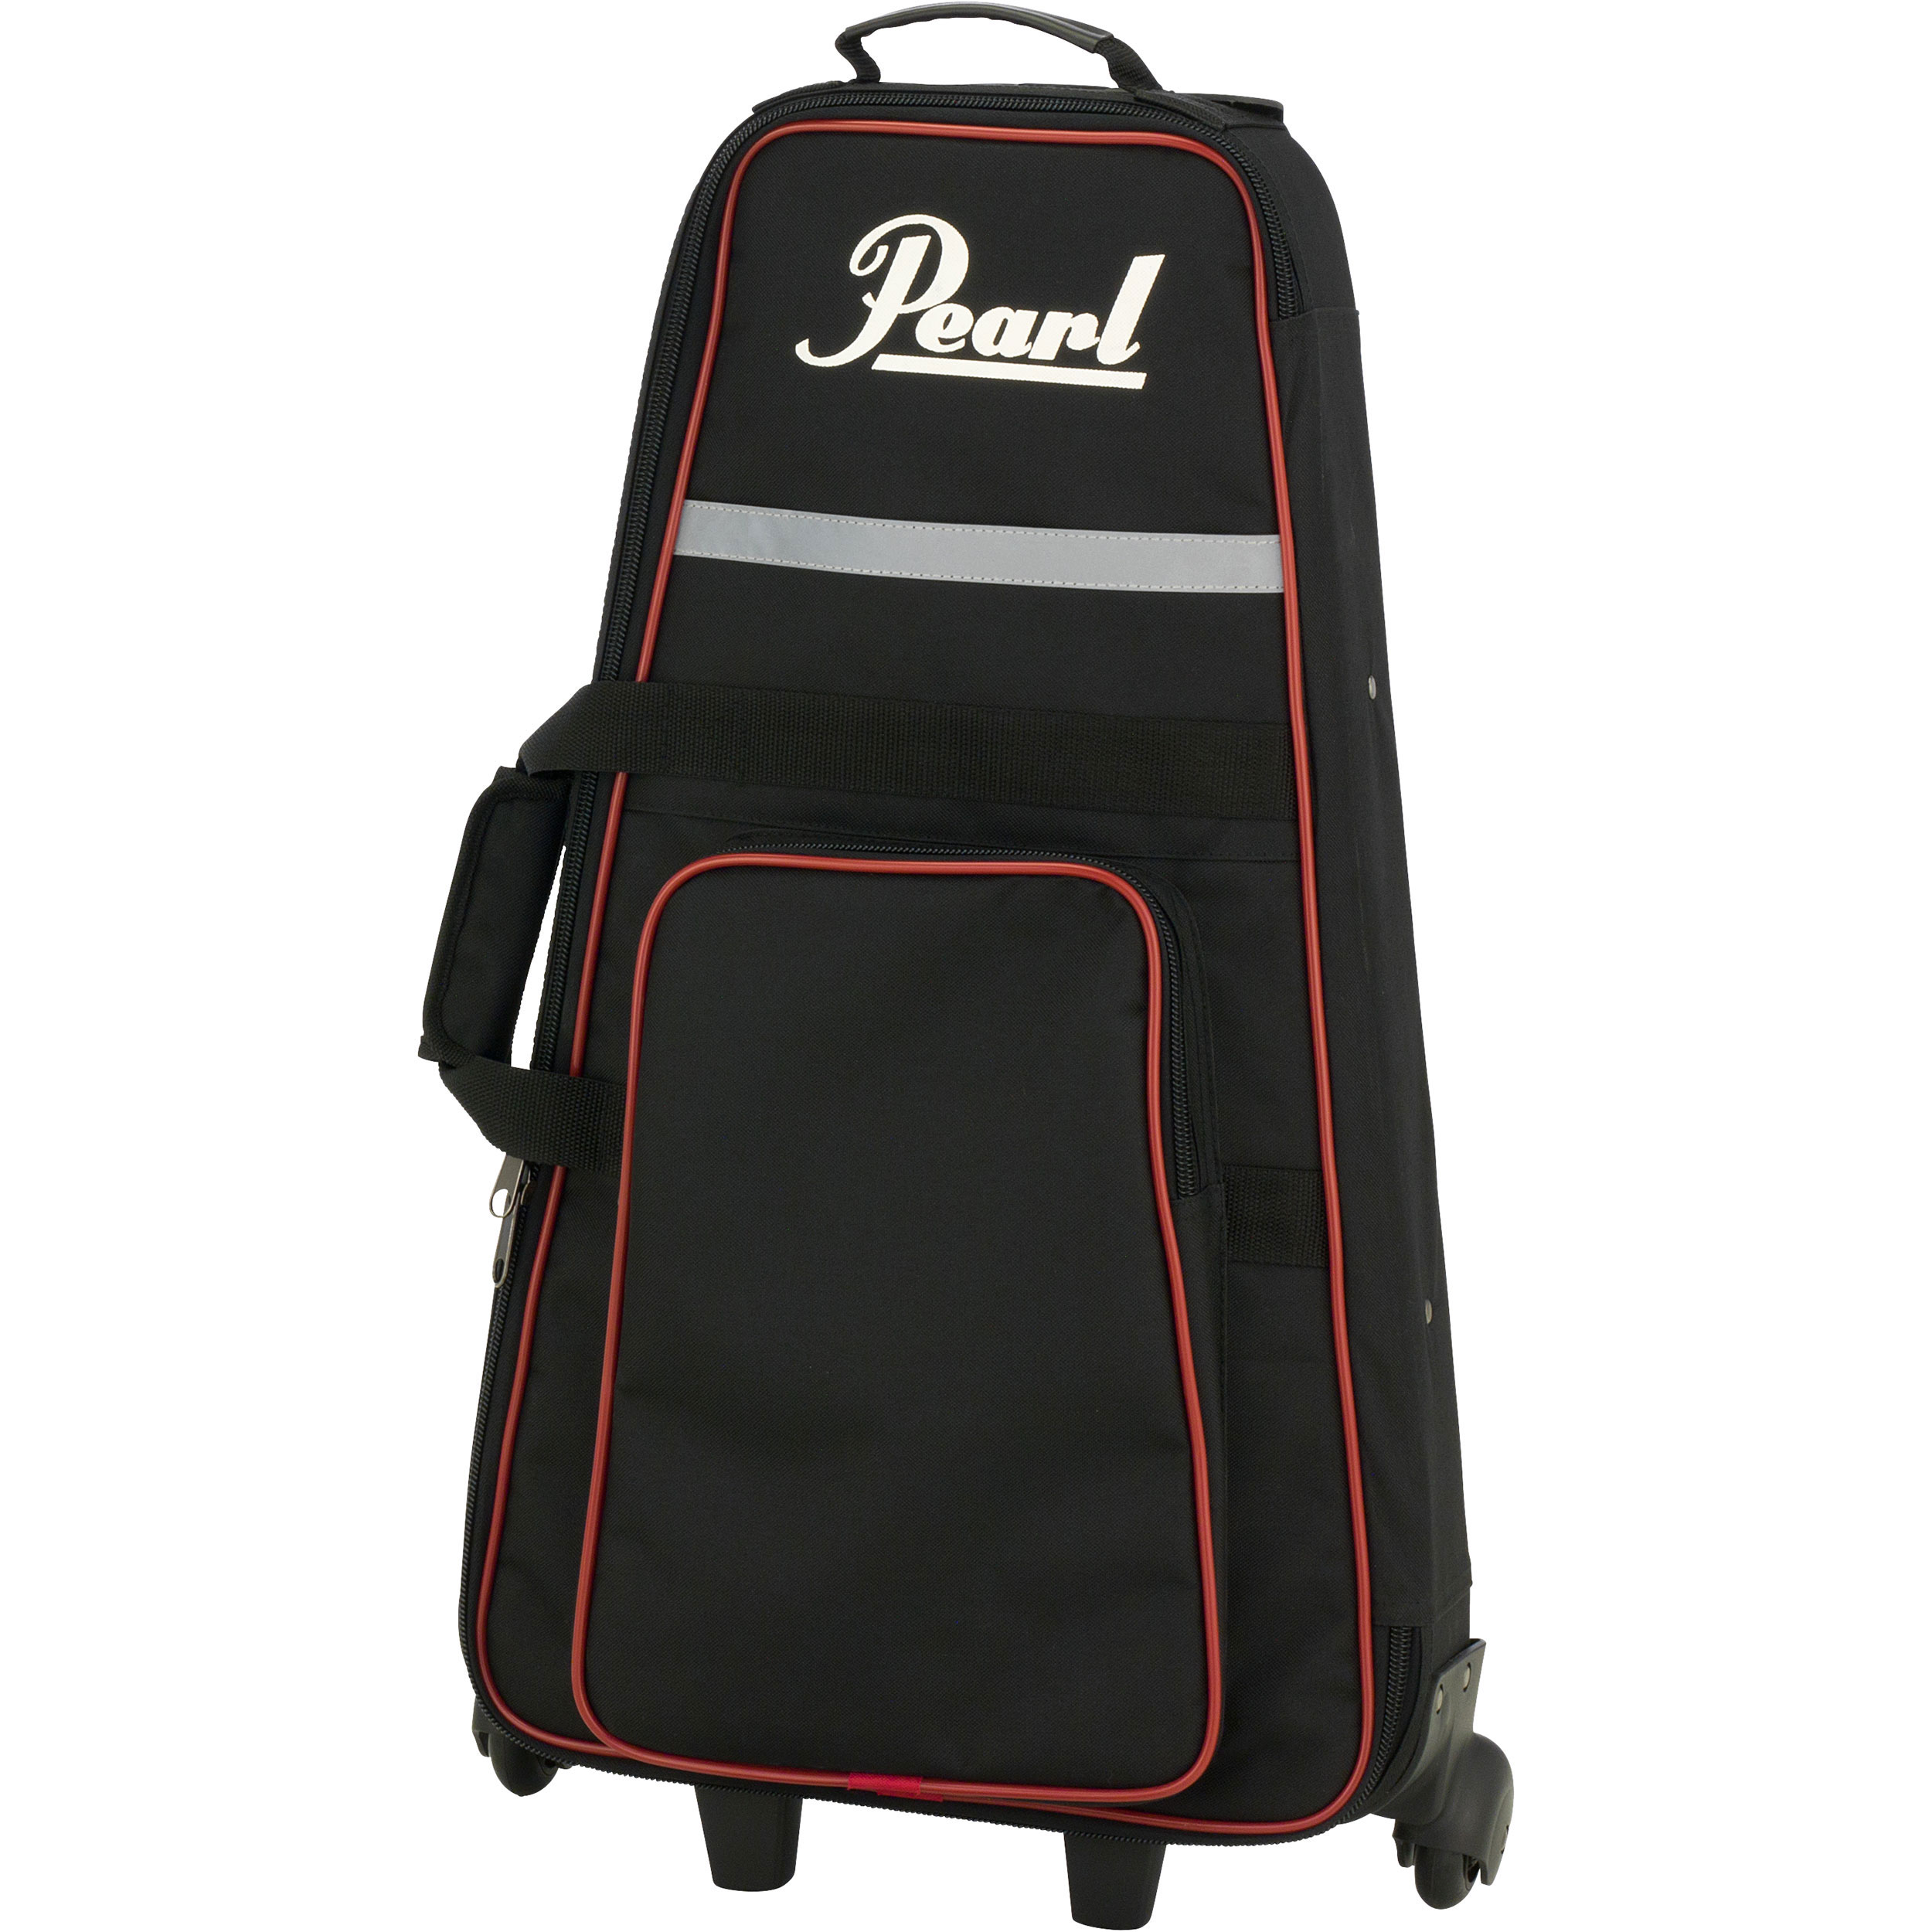 Pearl Carrying Case with Built-In Wheels for PK910C